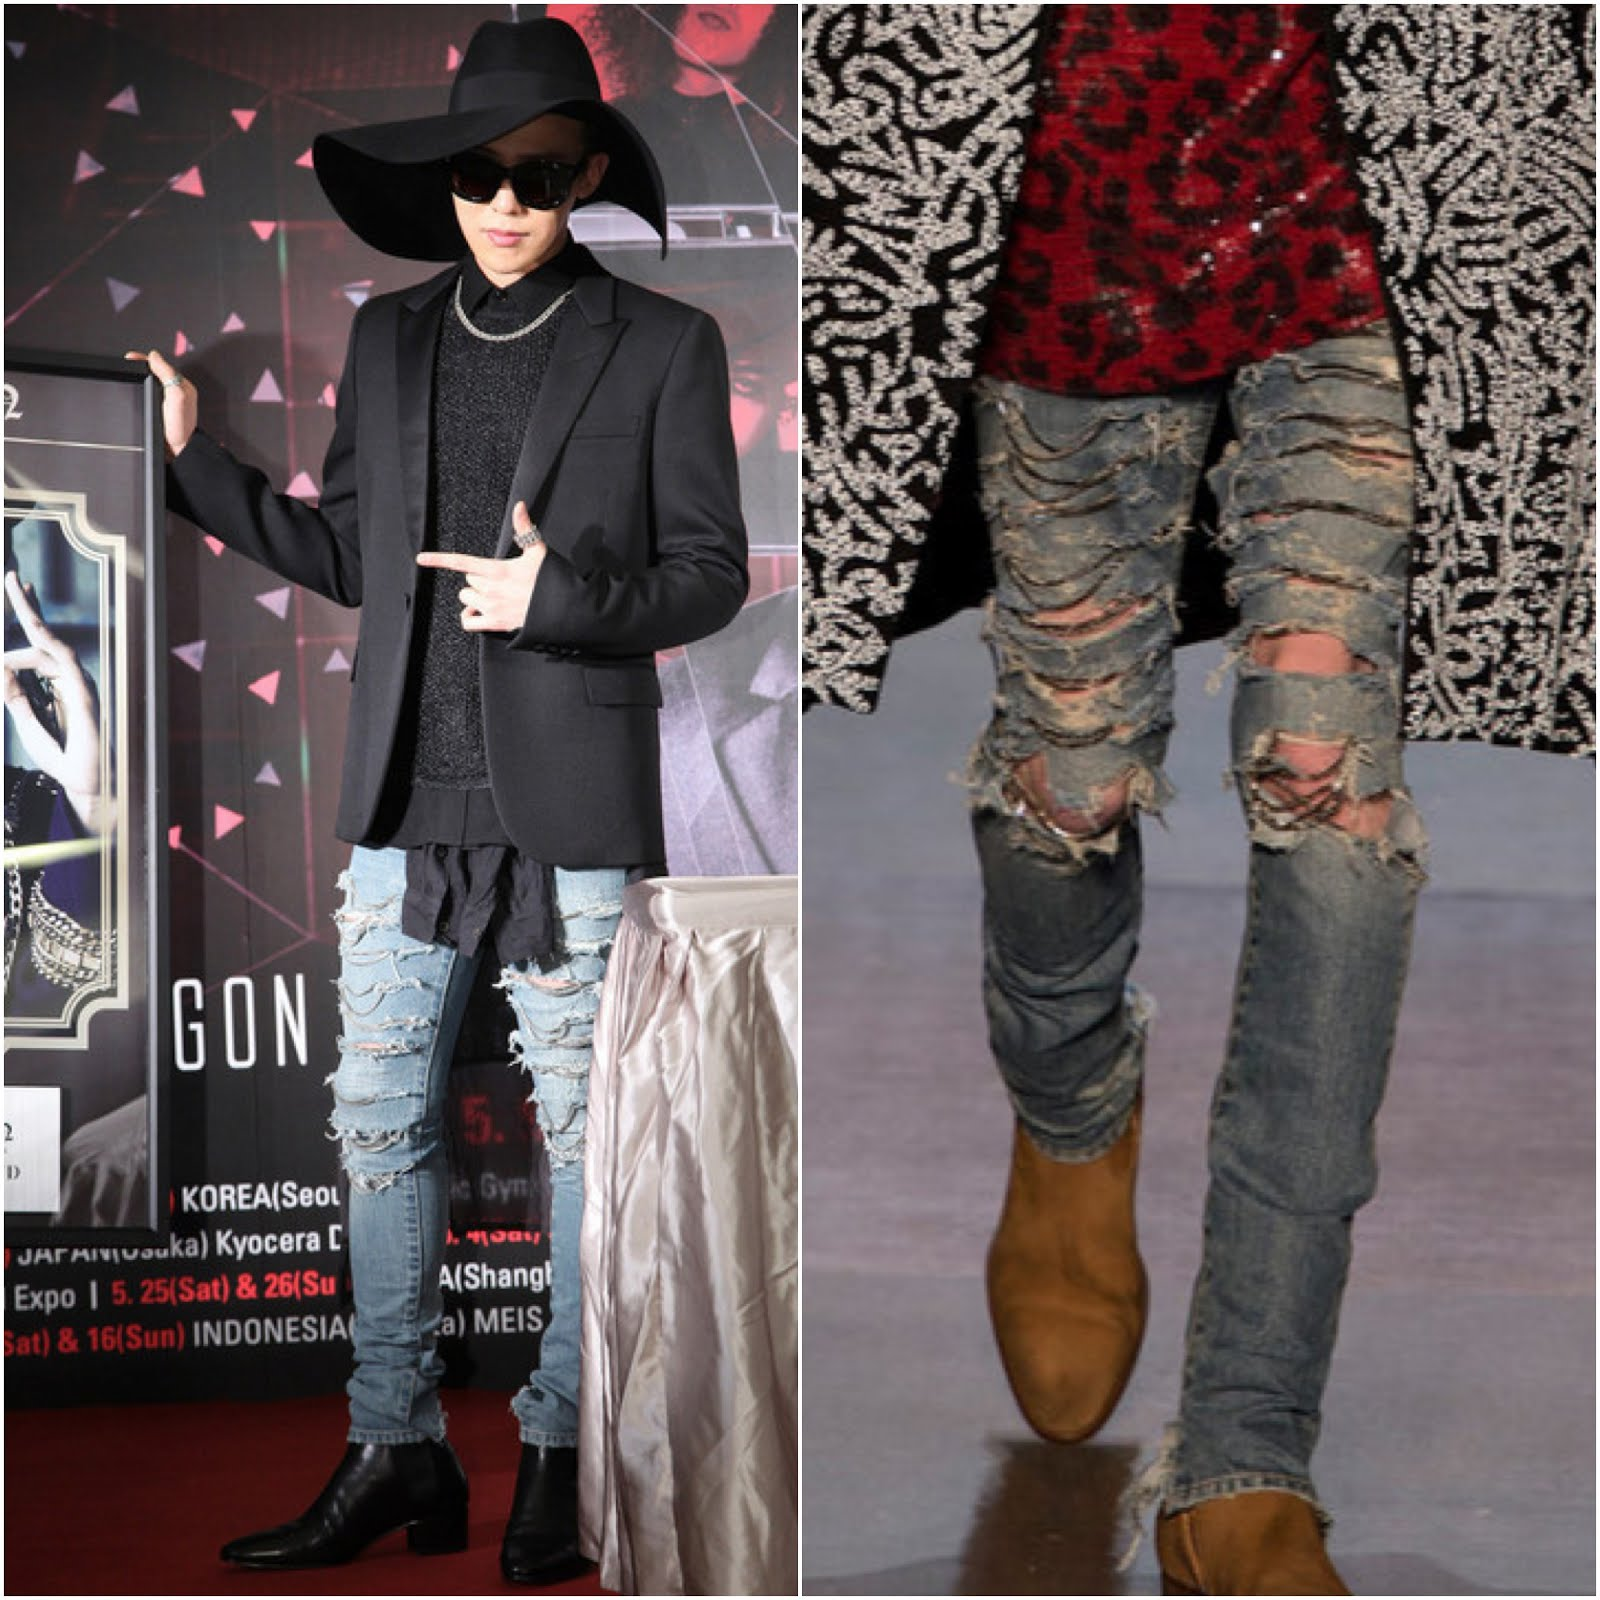 00O00 Menswear Blog http://00O00.blogspot.com G-Dragon in Saint Laurent - World Tour Taiwan Promo [GD权志龙台北宣传个唱]